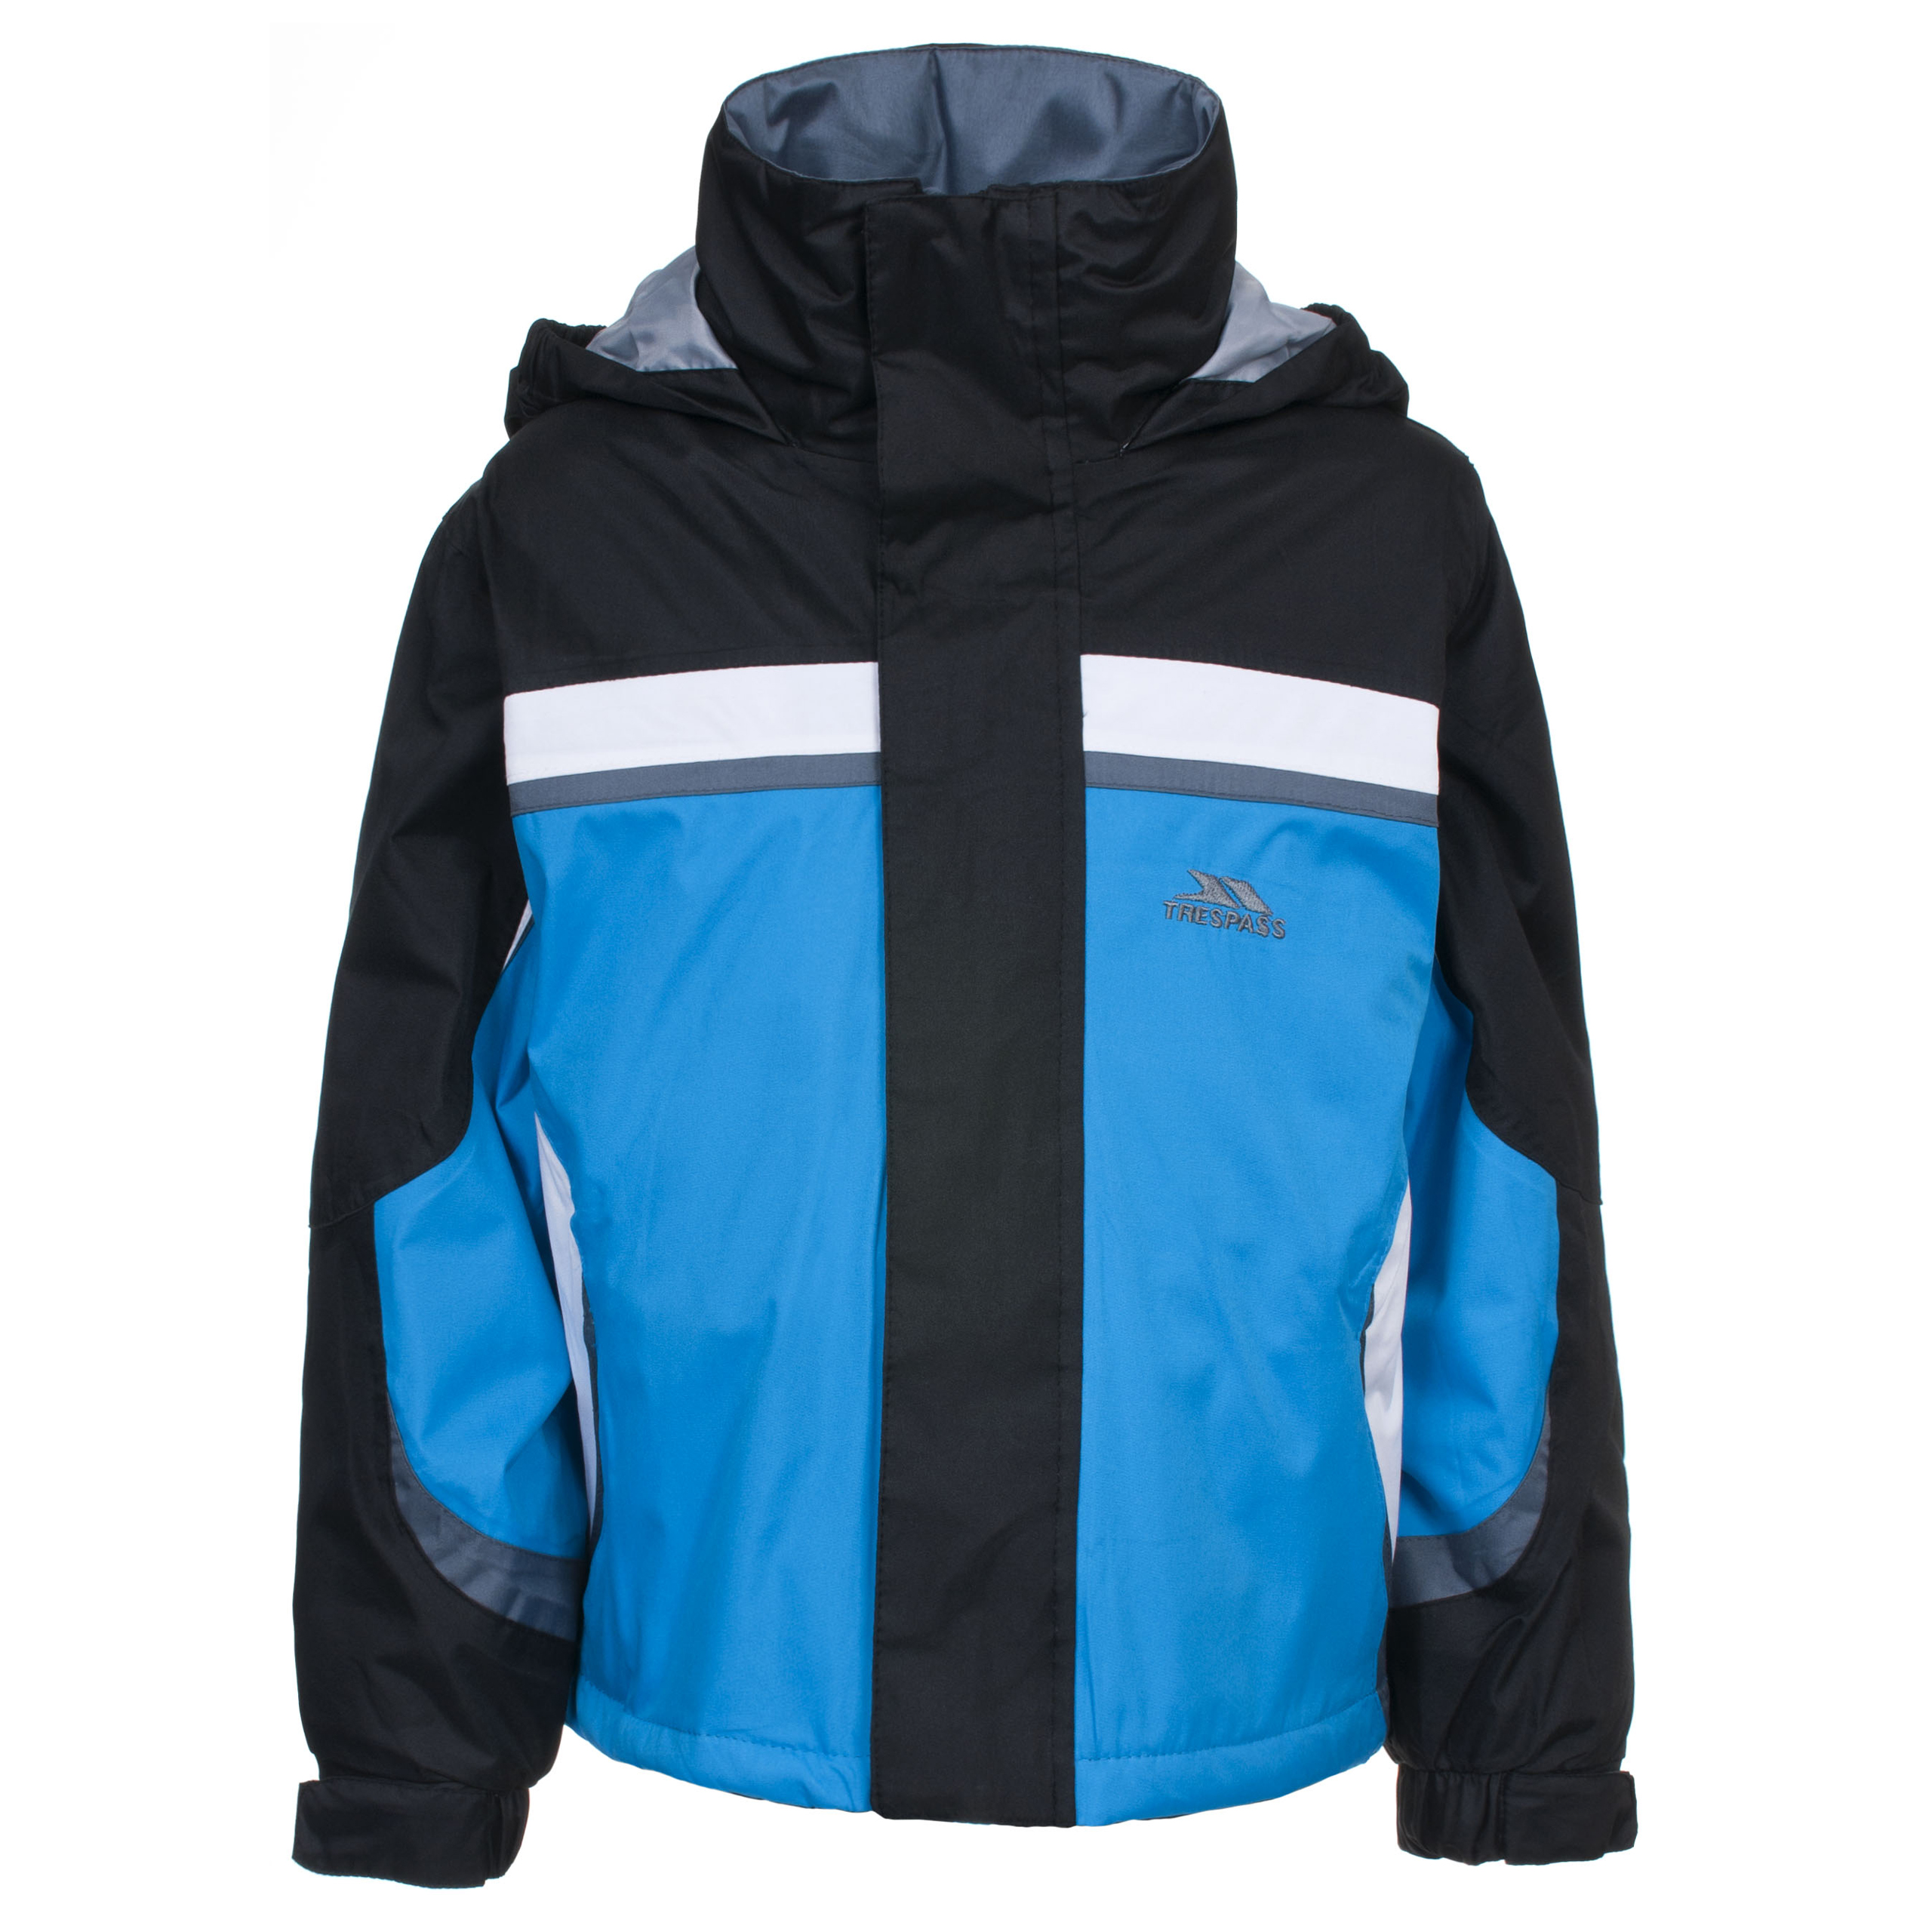 Compare Boys' Pine Grove Jacket Our most versatile ski/boarding/everyday jacket, the polyester shell has a DWR (durable water repellent) finish to resist light moisture and snow, and is insulated with g Thermogreen® % polyester (92% recycled).